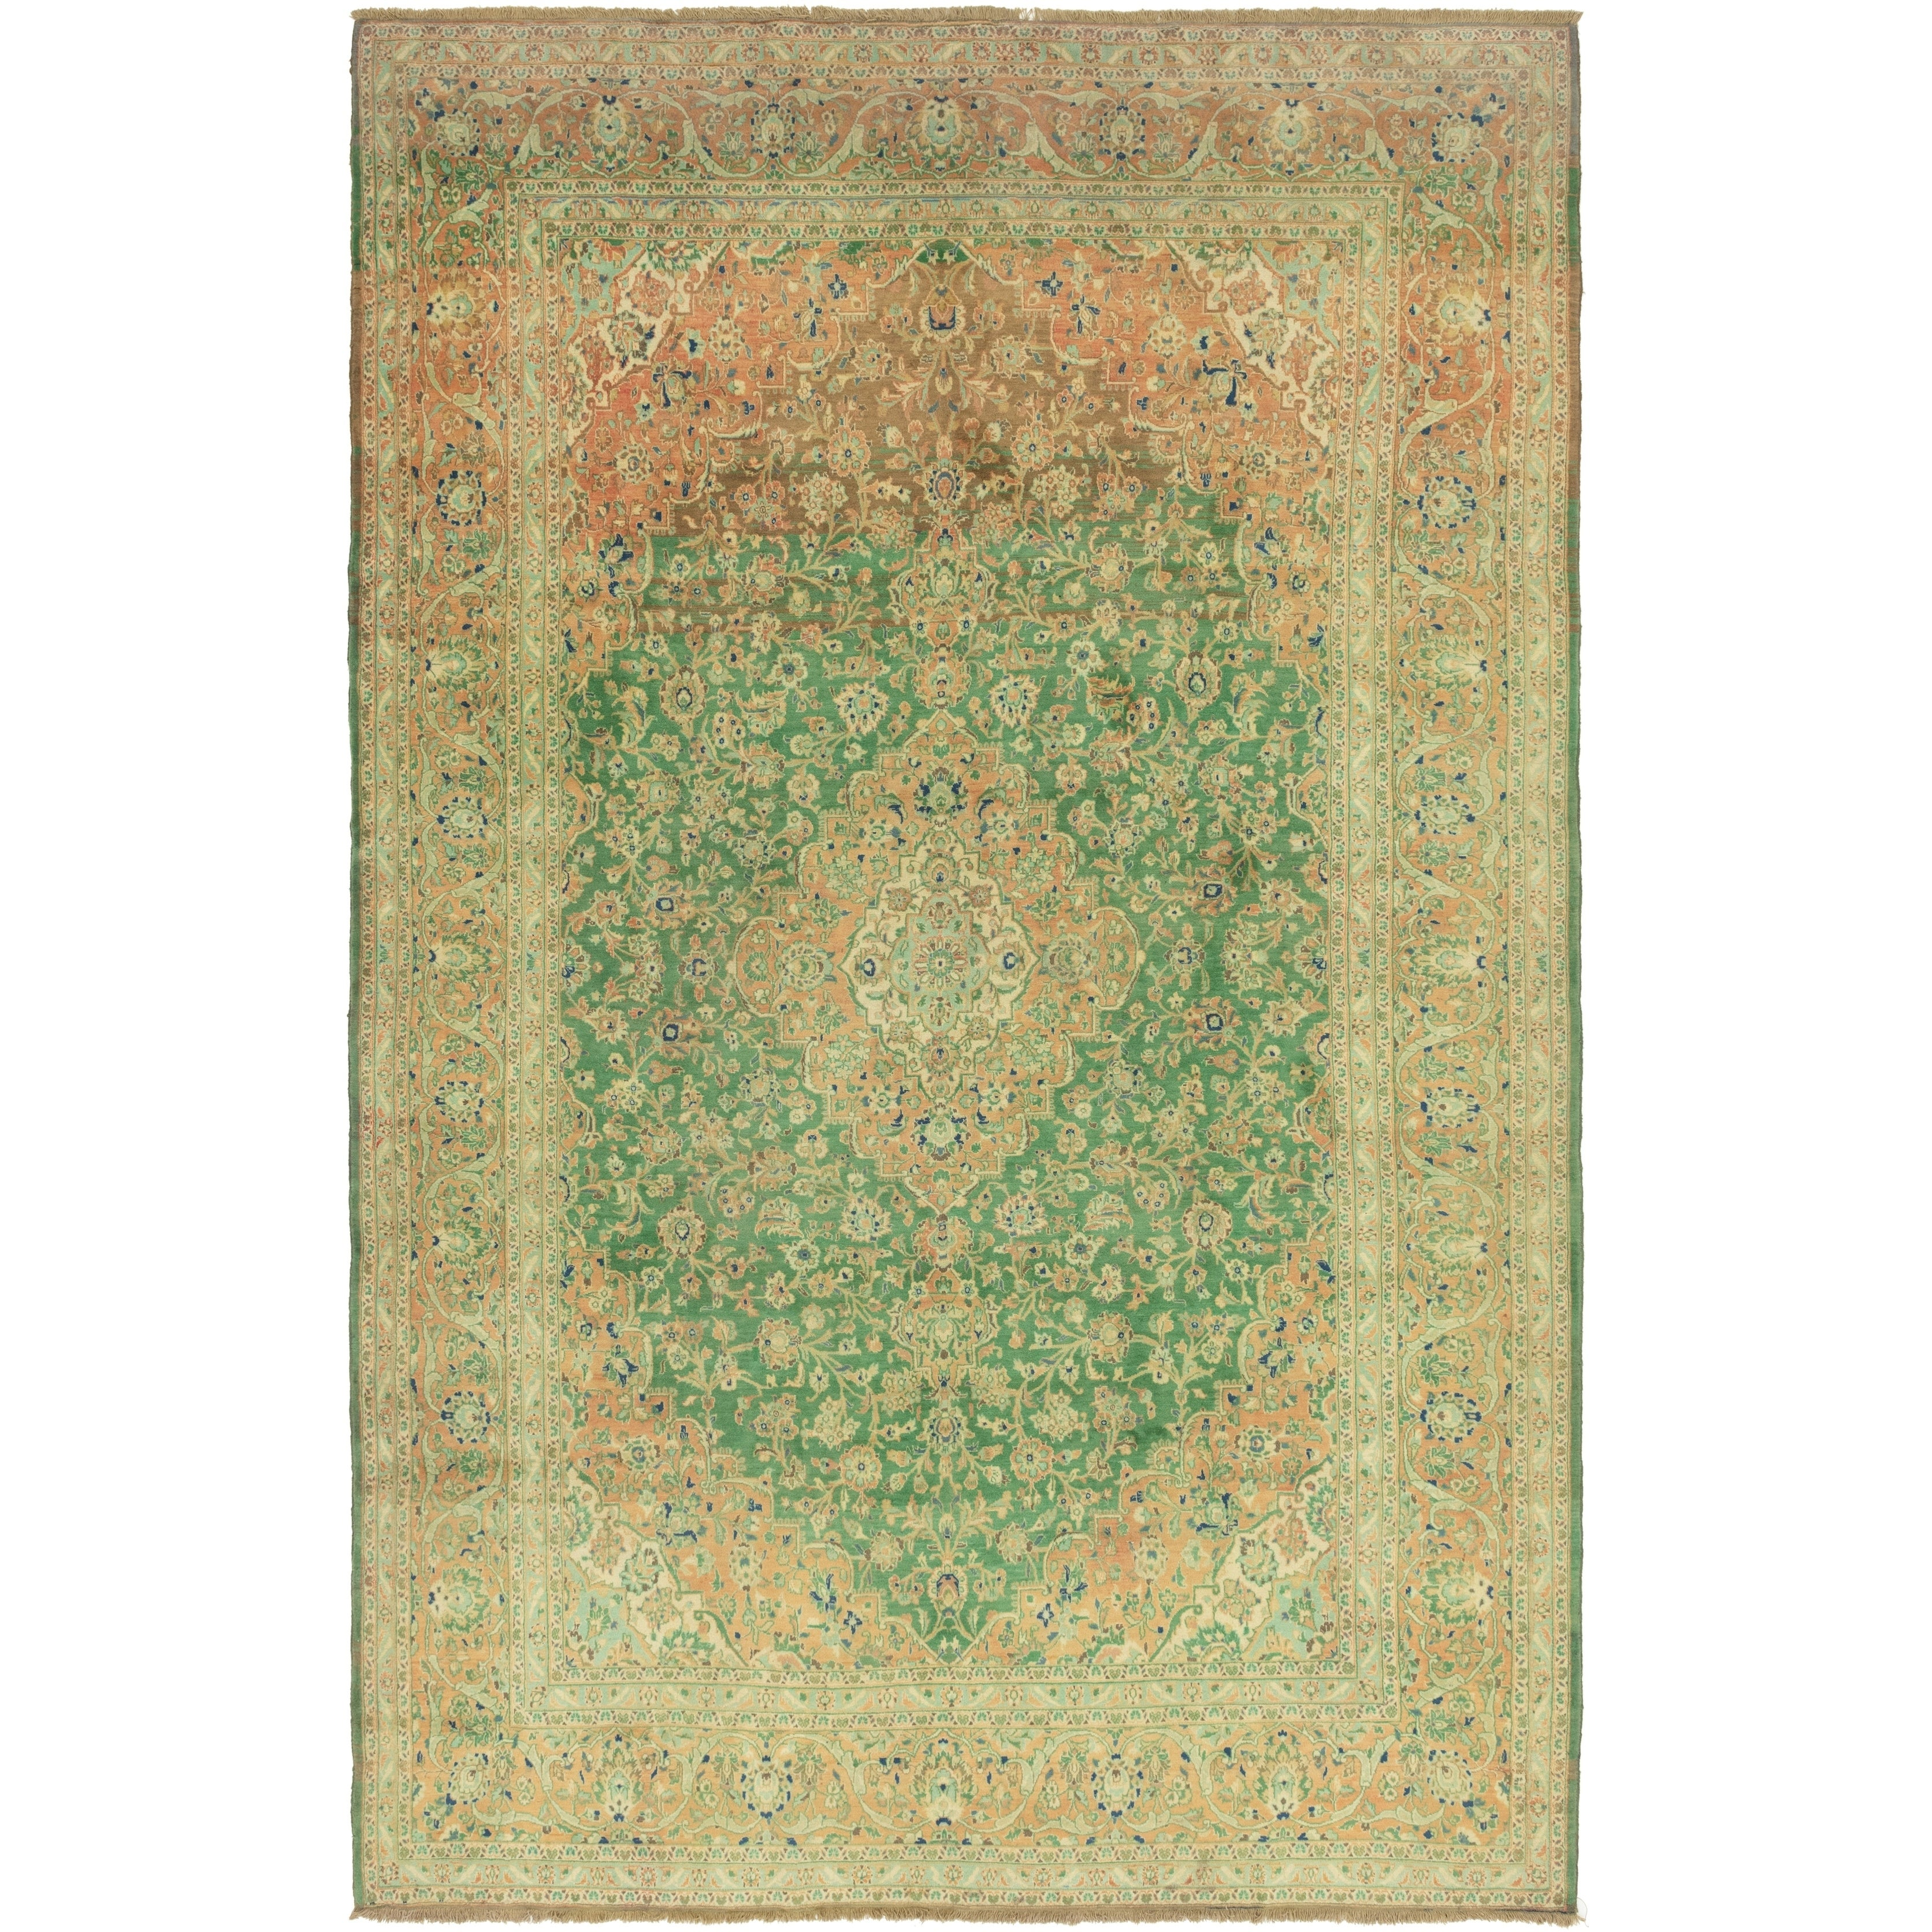 Hand Knotted Kashan Semi Antique Wool Area Rug - 9 8 x 14 9 (Green - 9 8 x 14 9)